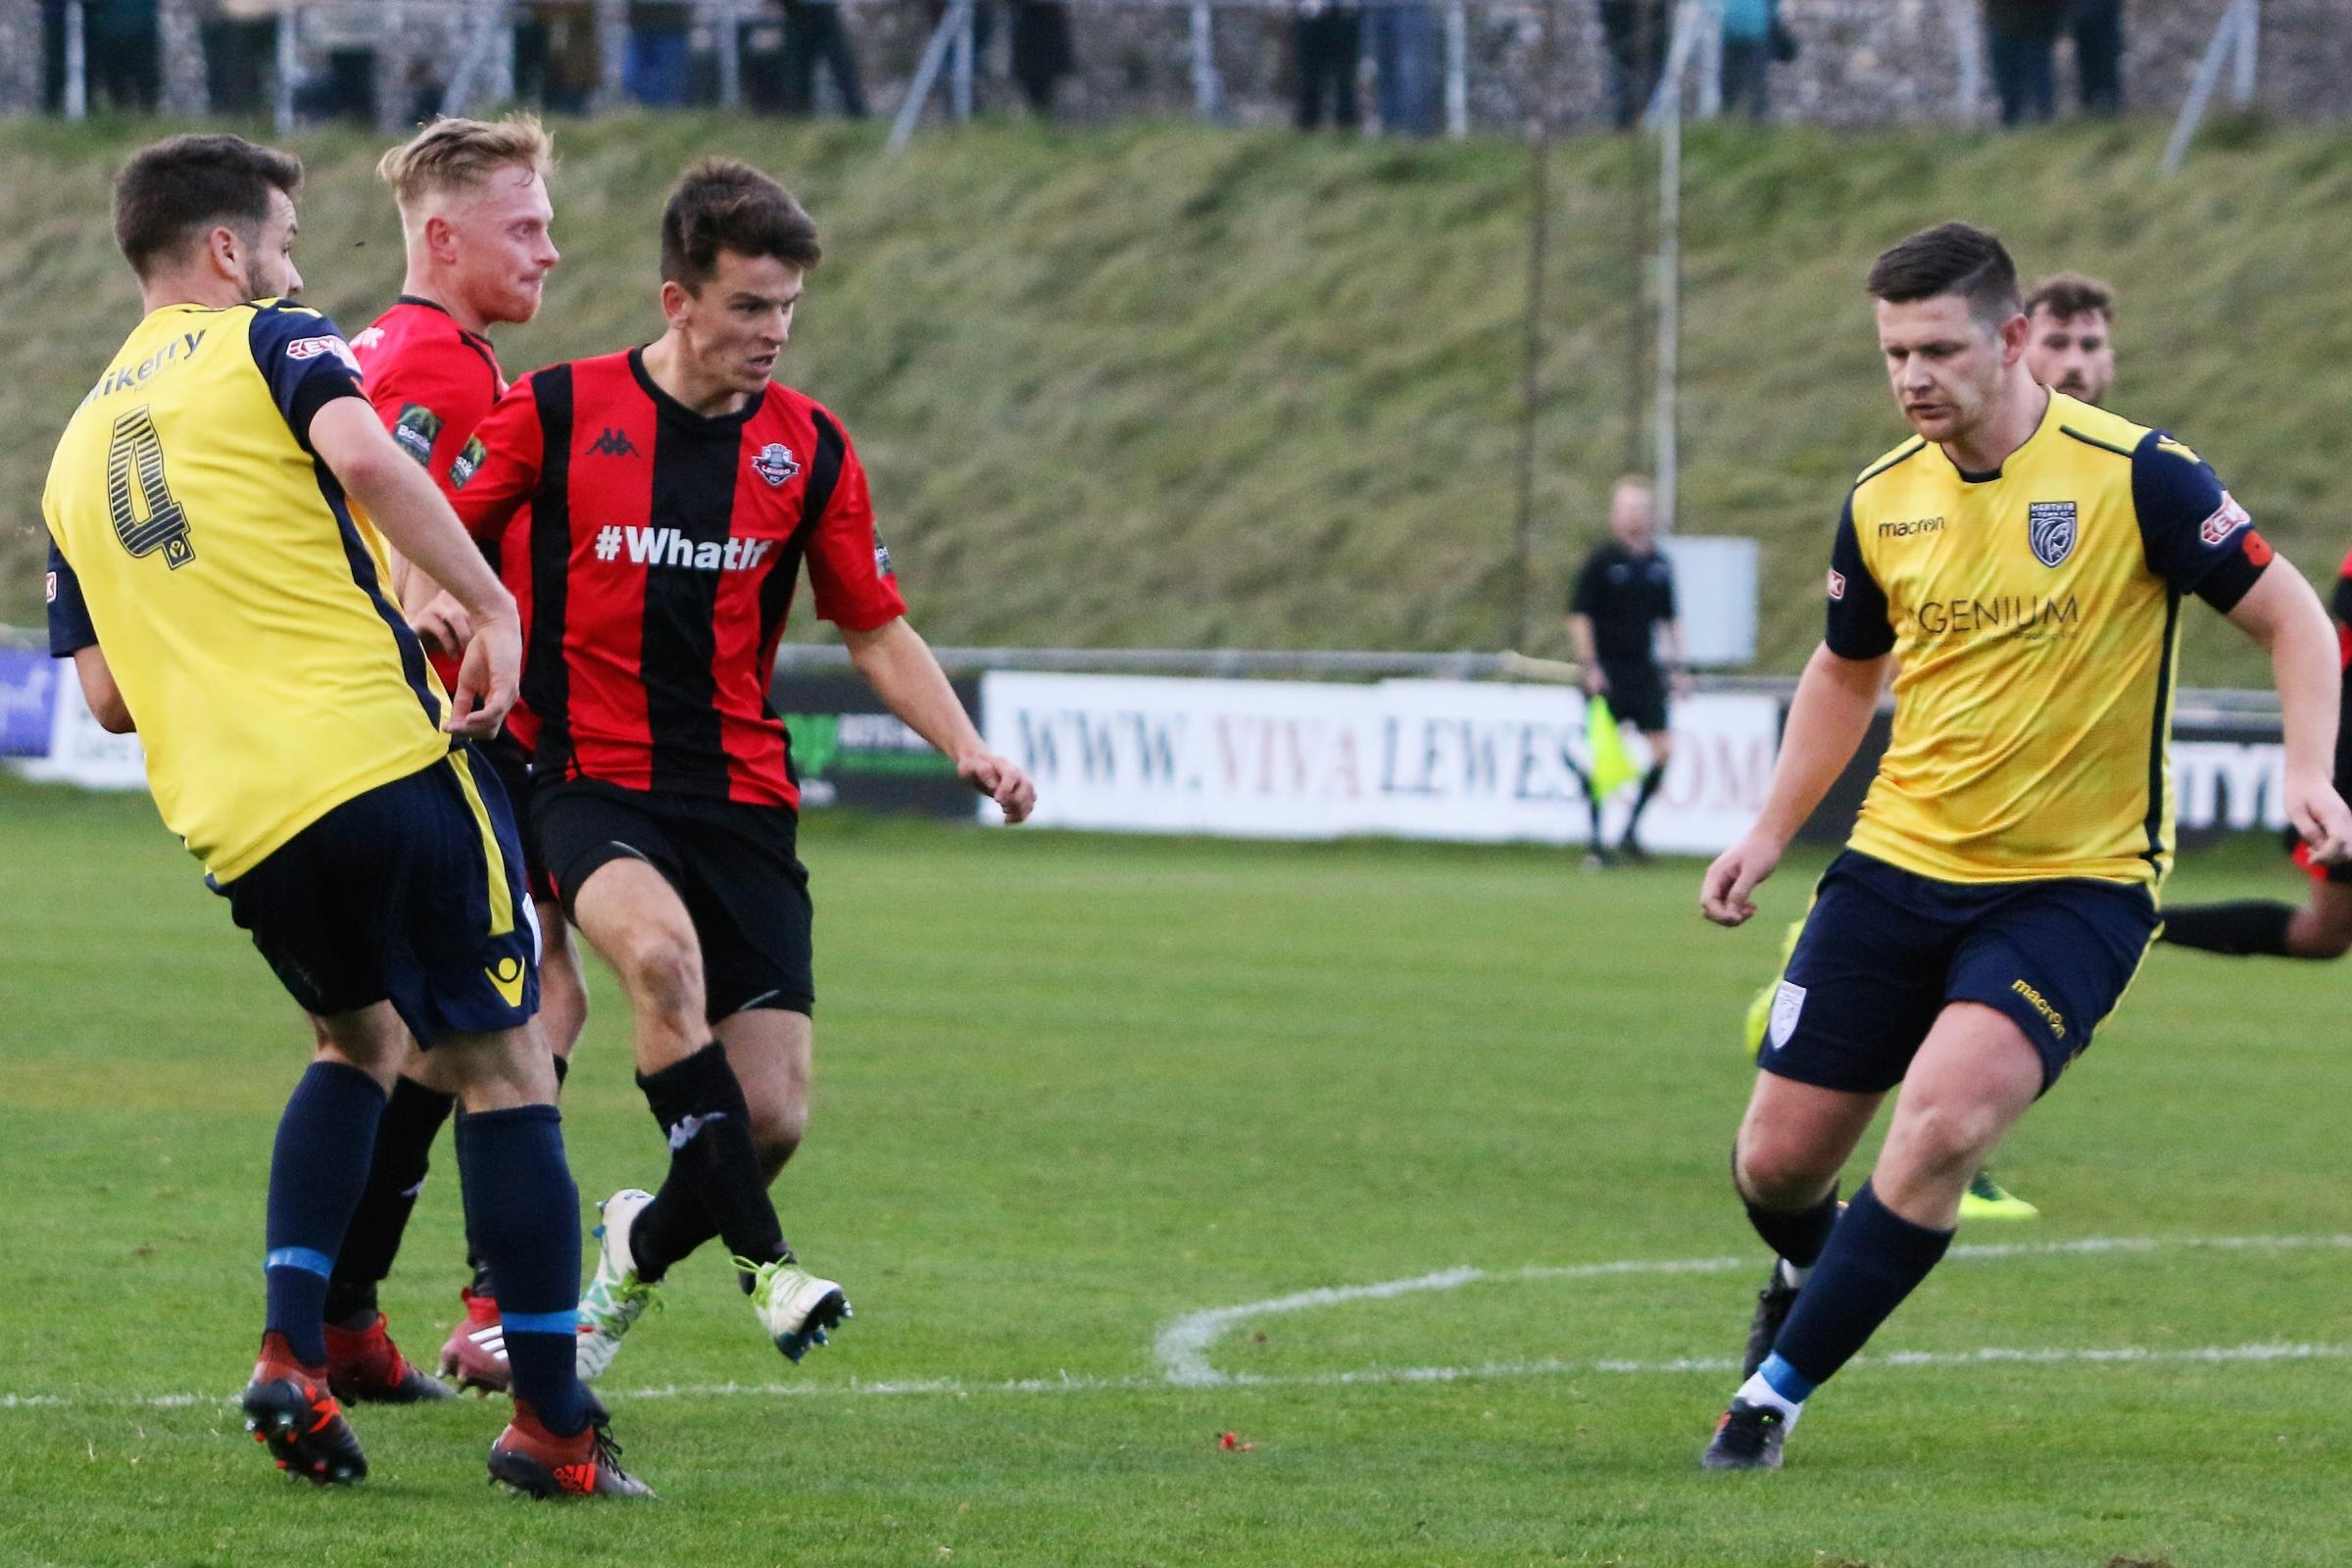 Horsham back at home in FA Trophy draw